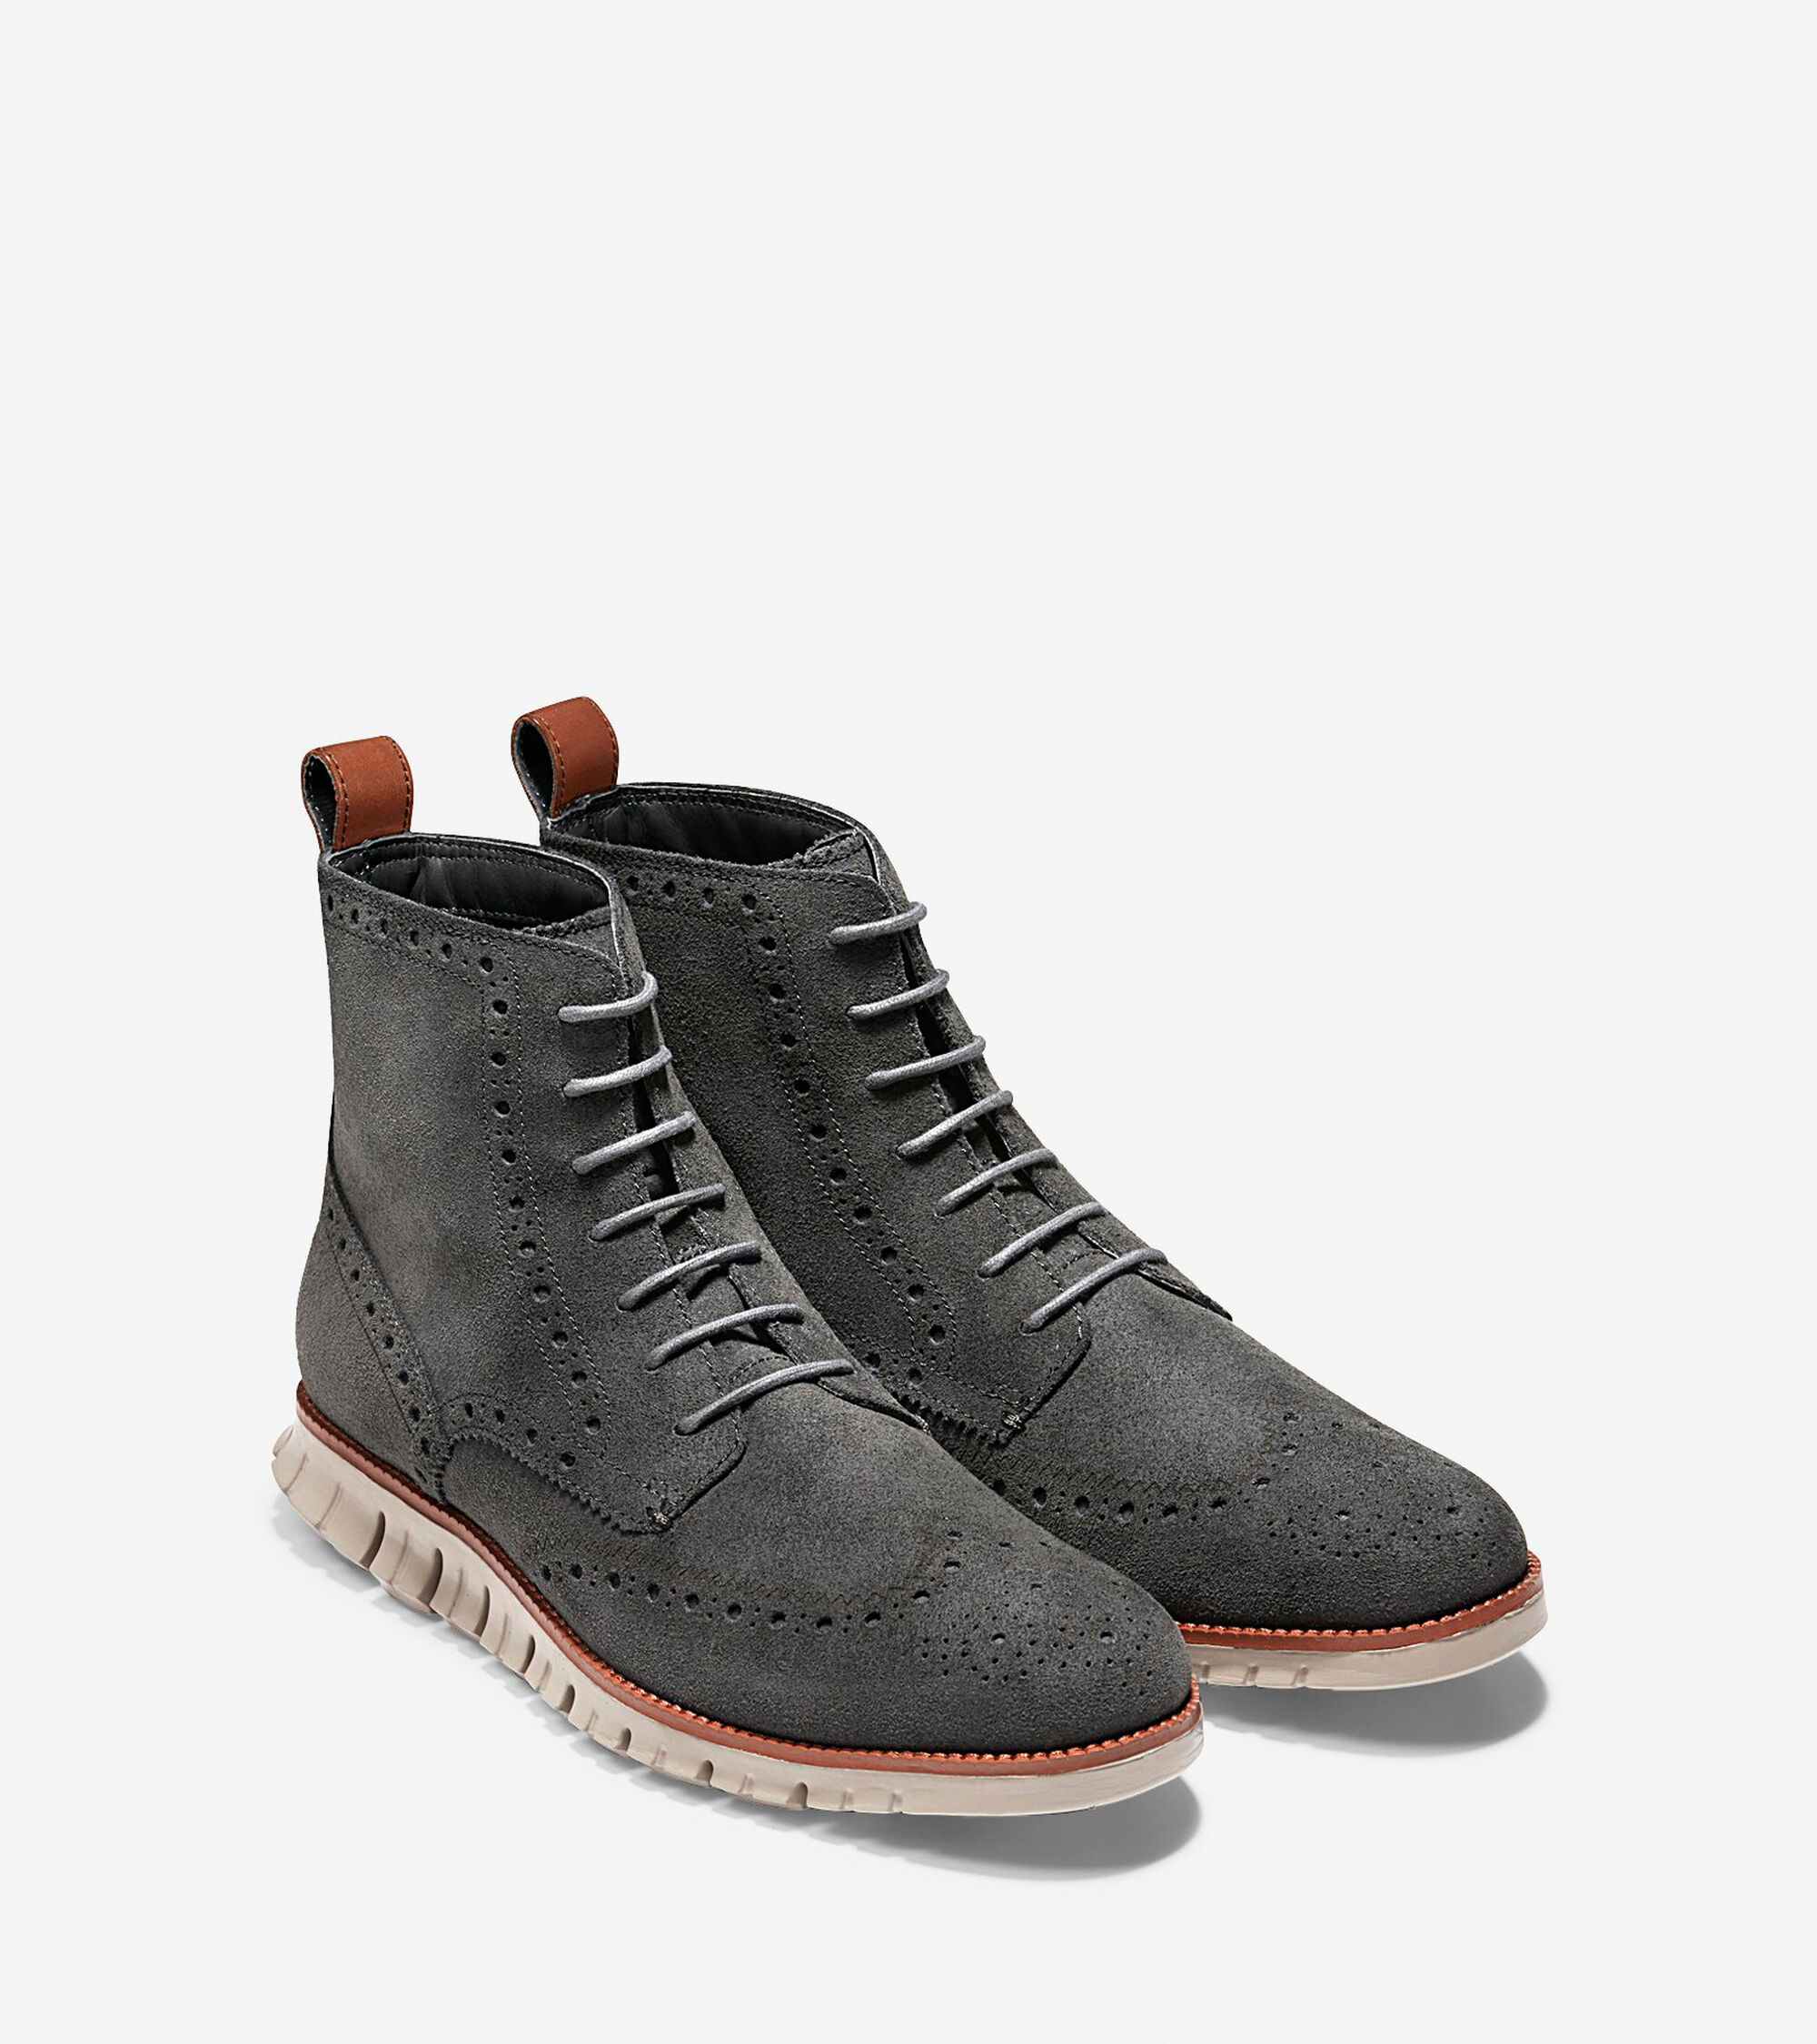 Good places for Cole Haan Holland Waterproof Hiker Boot (Men) affordable and good quality for sale all boots Best Choices. all boots ; By: Admin; The Cole Haan Holland Waterproof Hiker Boot (Men) is one items that of our carefully selected for dopefurien.ga is durable, stylish looks, and pretty dopefurien.ga is ideal to buy for your loved ones or for their own use or to give as gifts on important dopefurien.ga